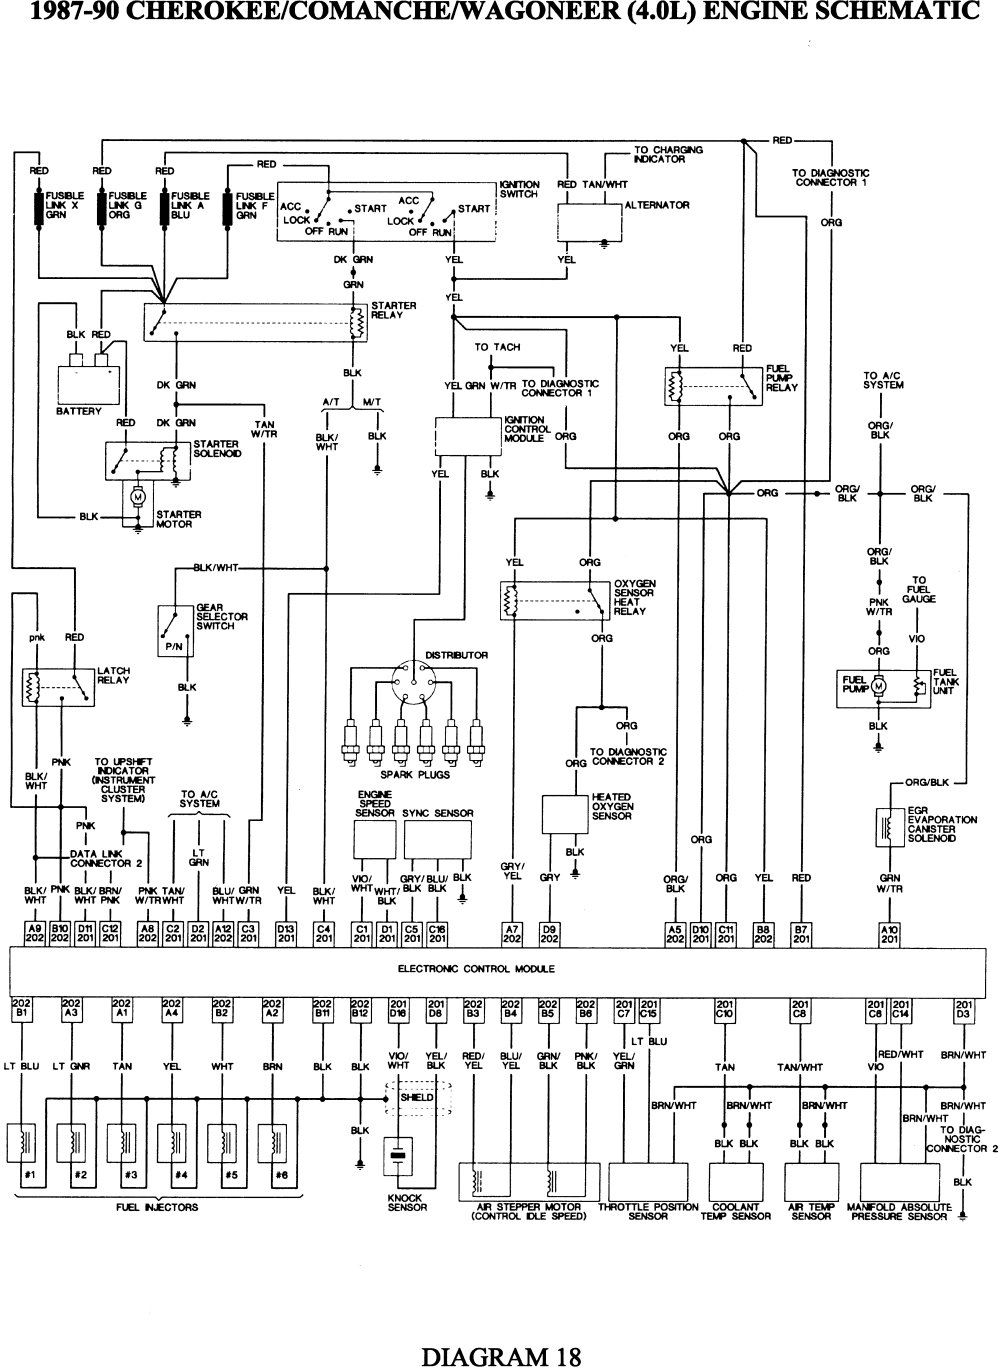 small resolution of 1997 jeep wrangler alternator diagram on jeep wrangler electrical mix 1997 jeep wrangler electrical diagram wiring